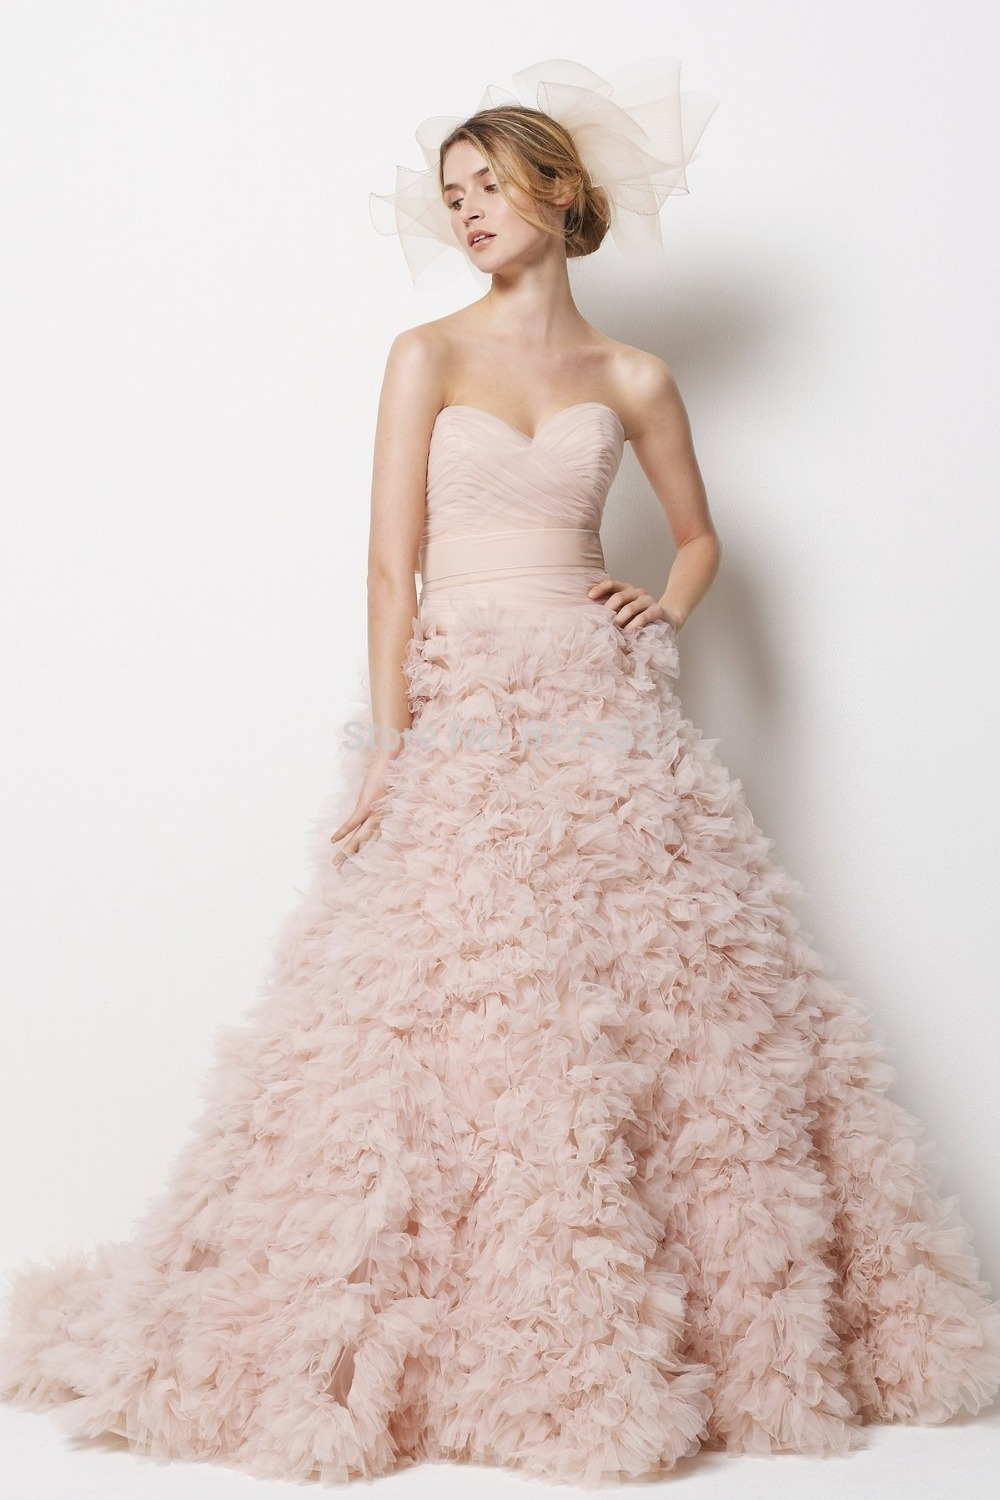 Strapless Sweetheart Ball Gown Ruffles Skirt Low Back Blush Colored ...